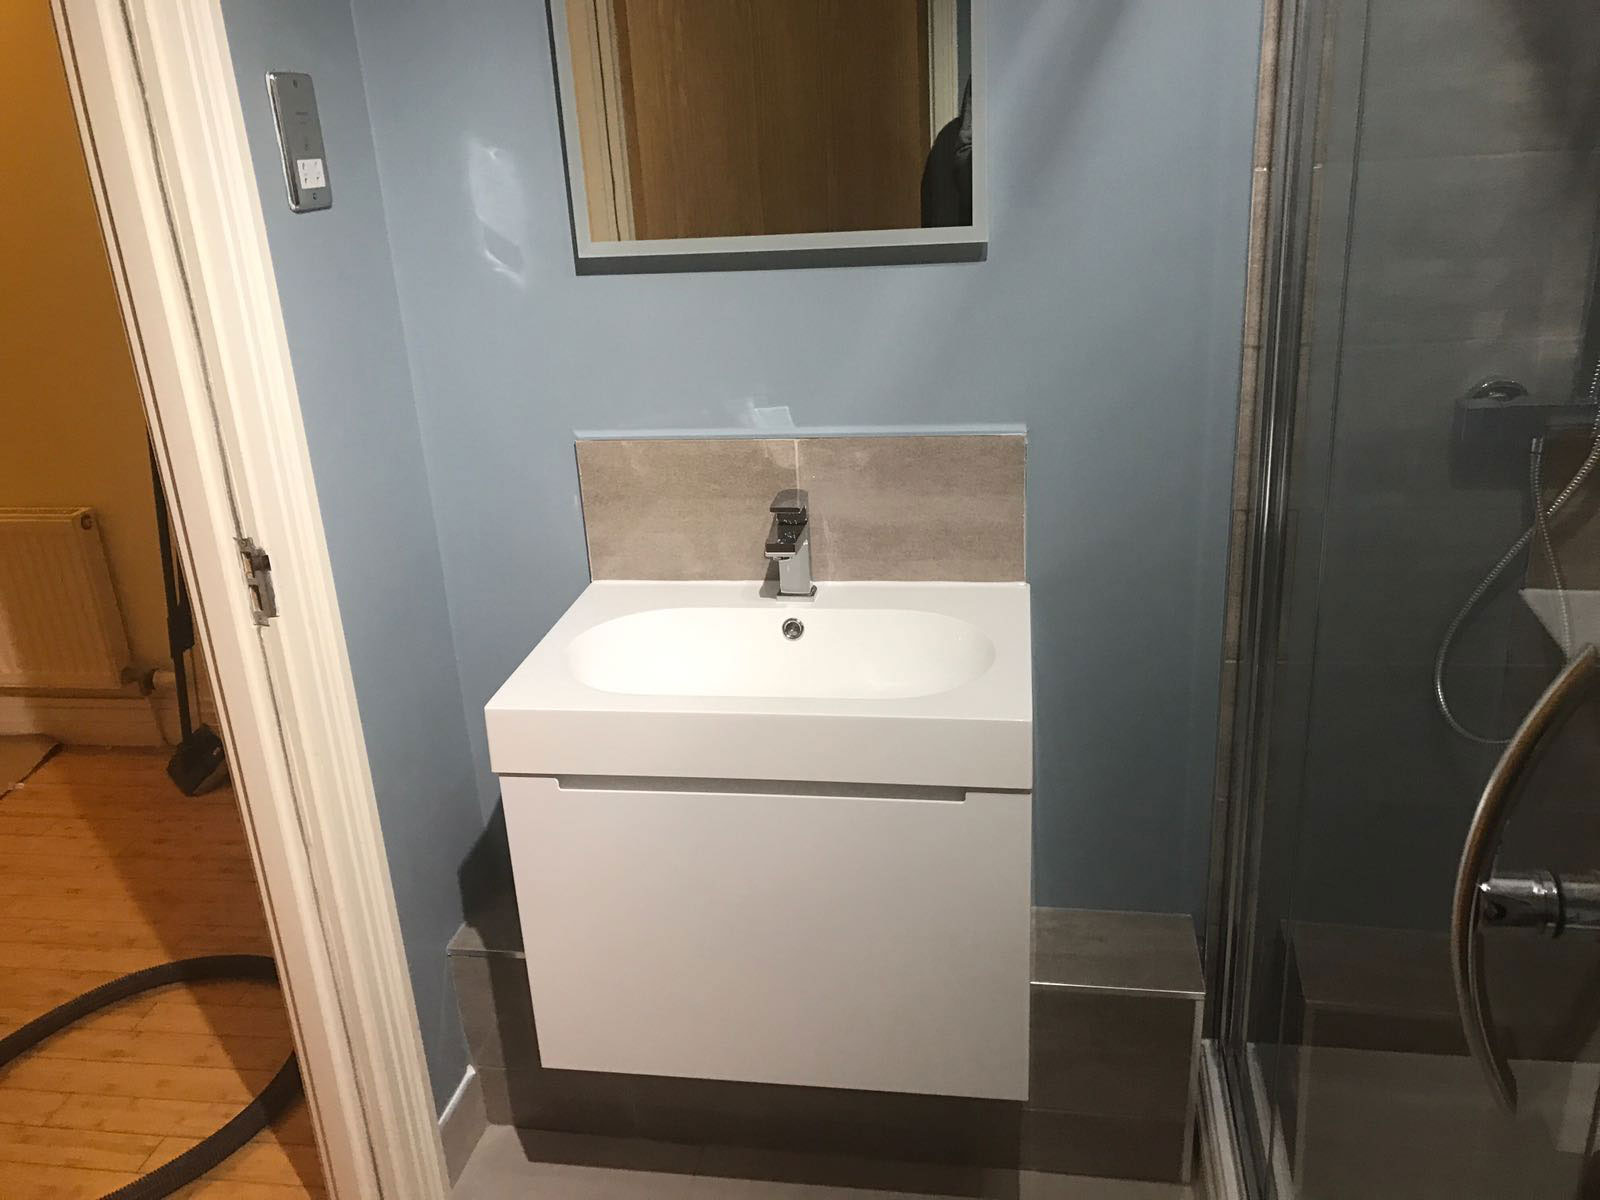 Two new bathroom suites installations in moseley birmingham for Bathroom design birmingham